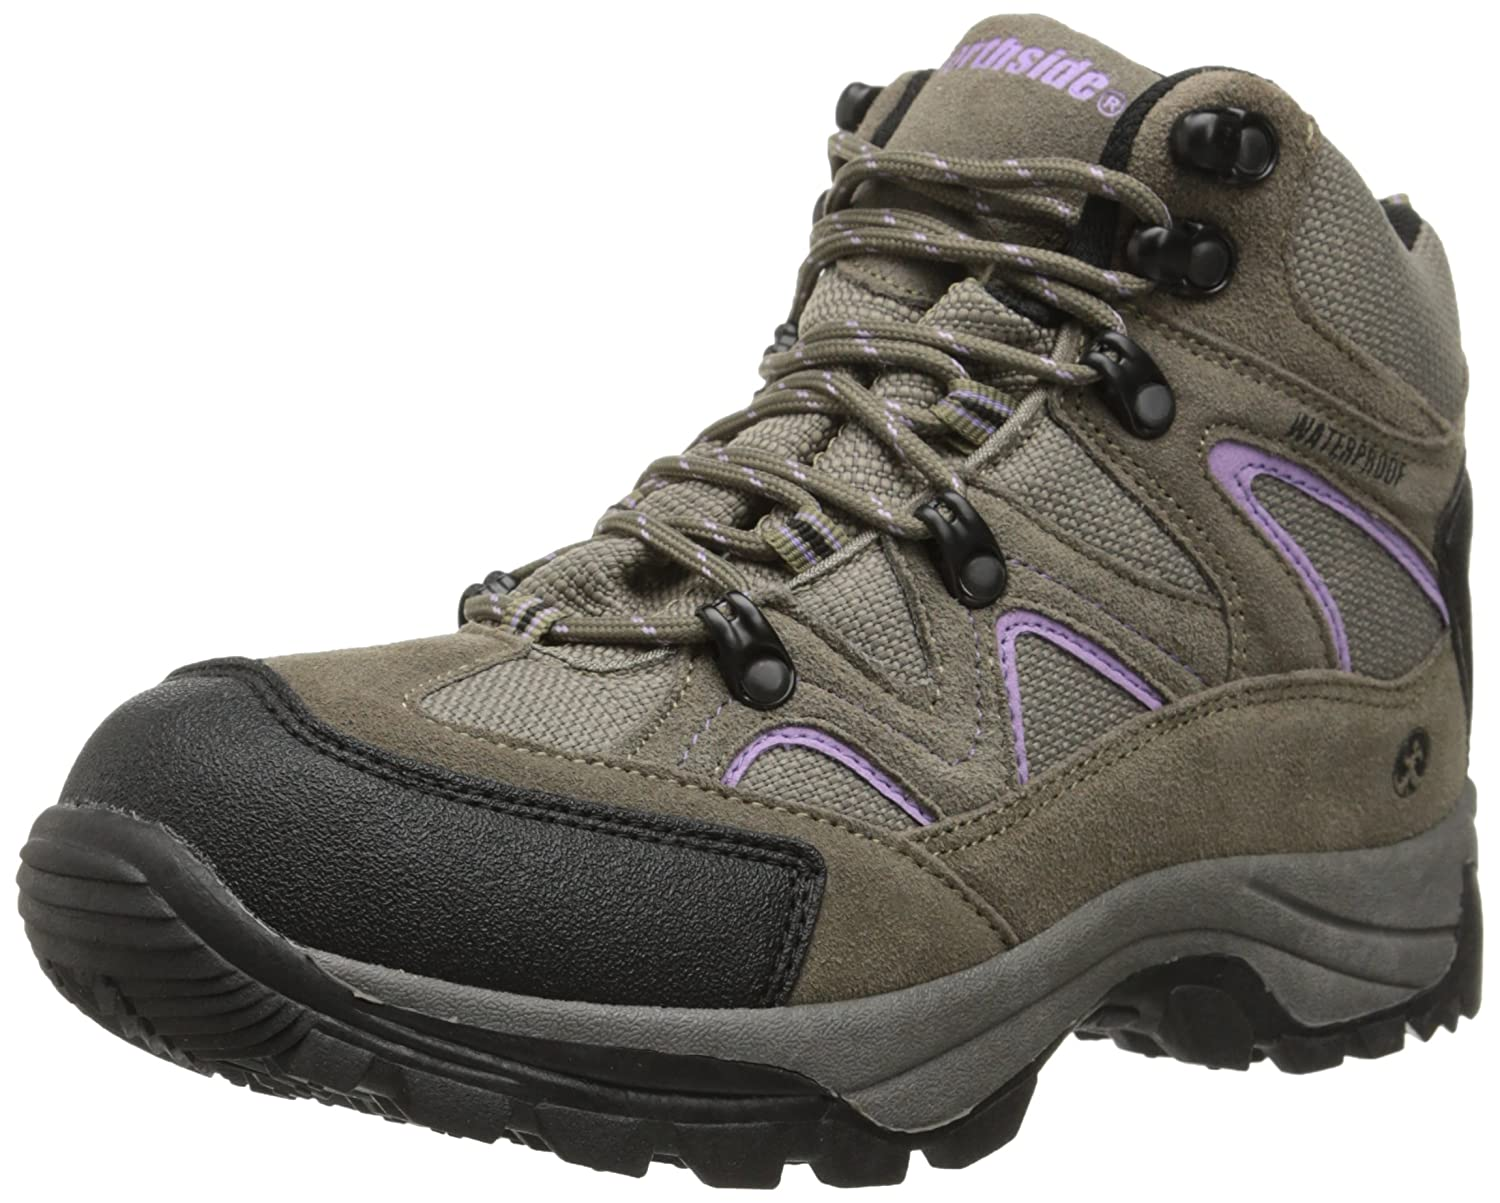 Awesome Femsxtgd Authentic New Balance Women39s Hiking Boots Reviews